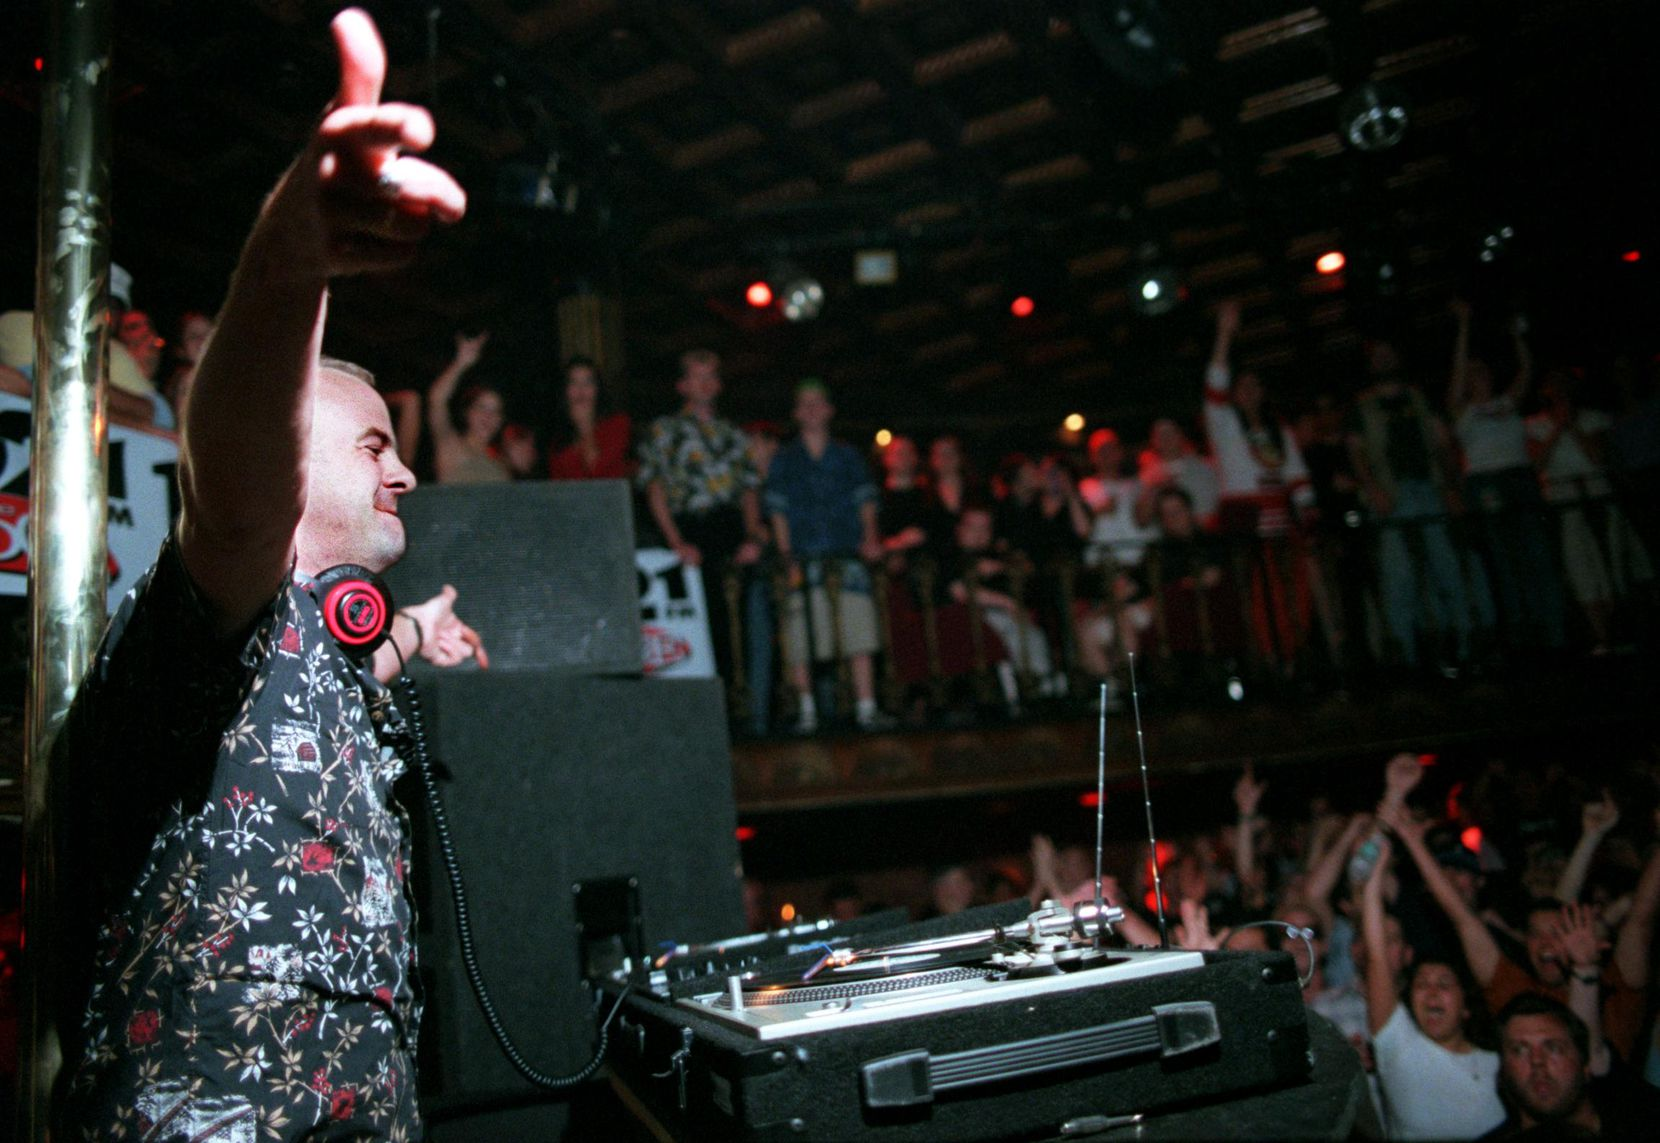 Fatboy Slim performs at Lizard Lounge in 2001.